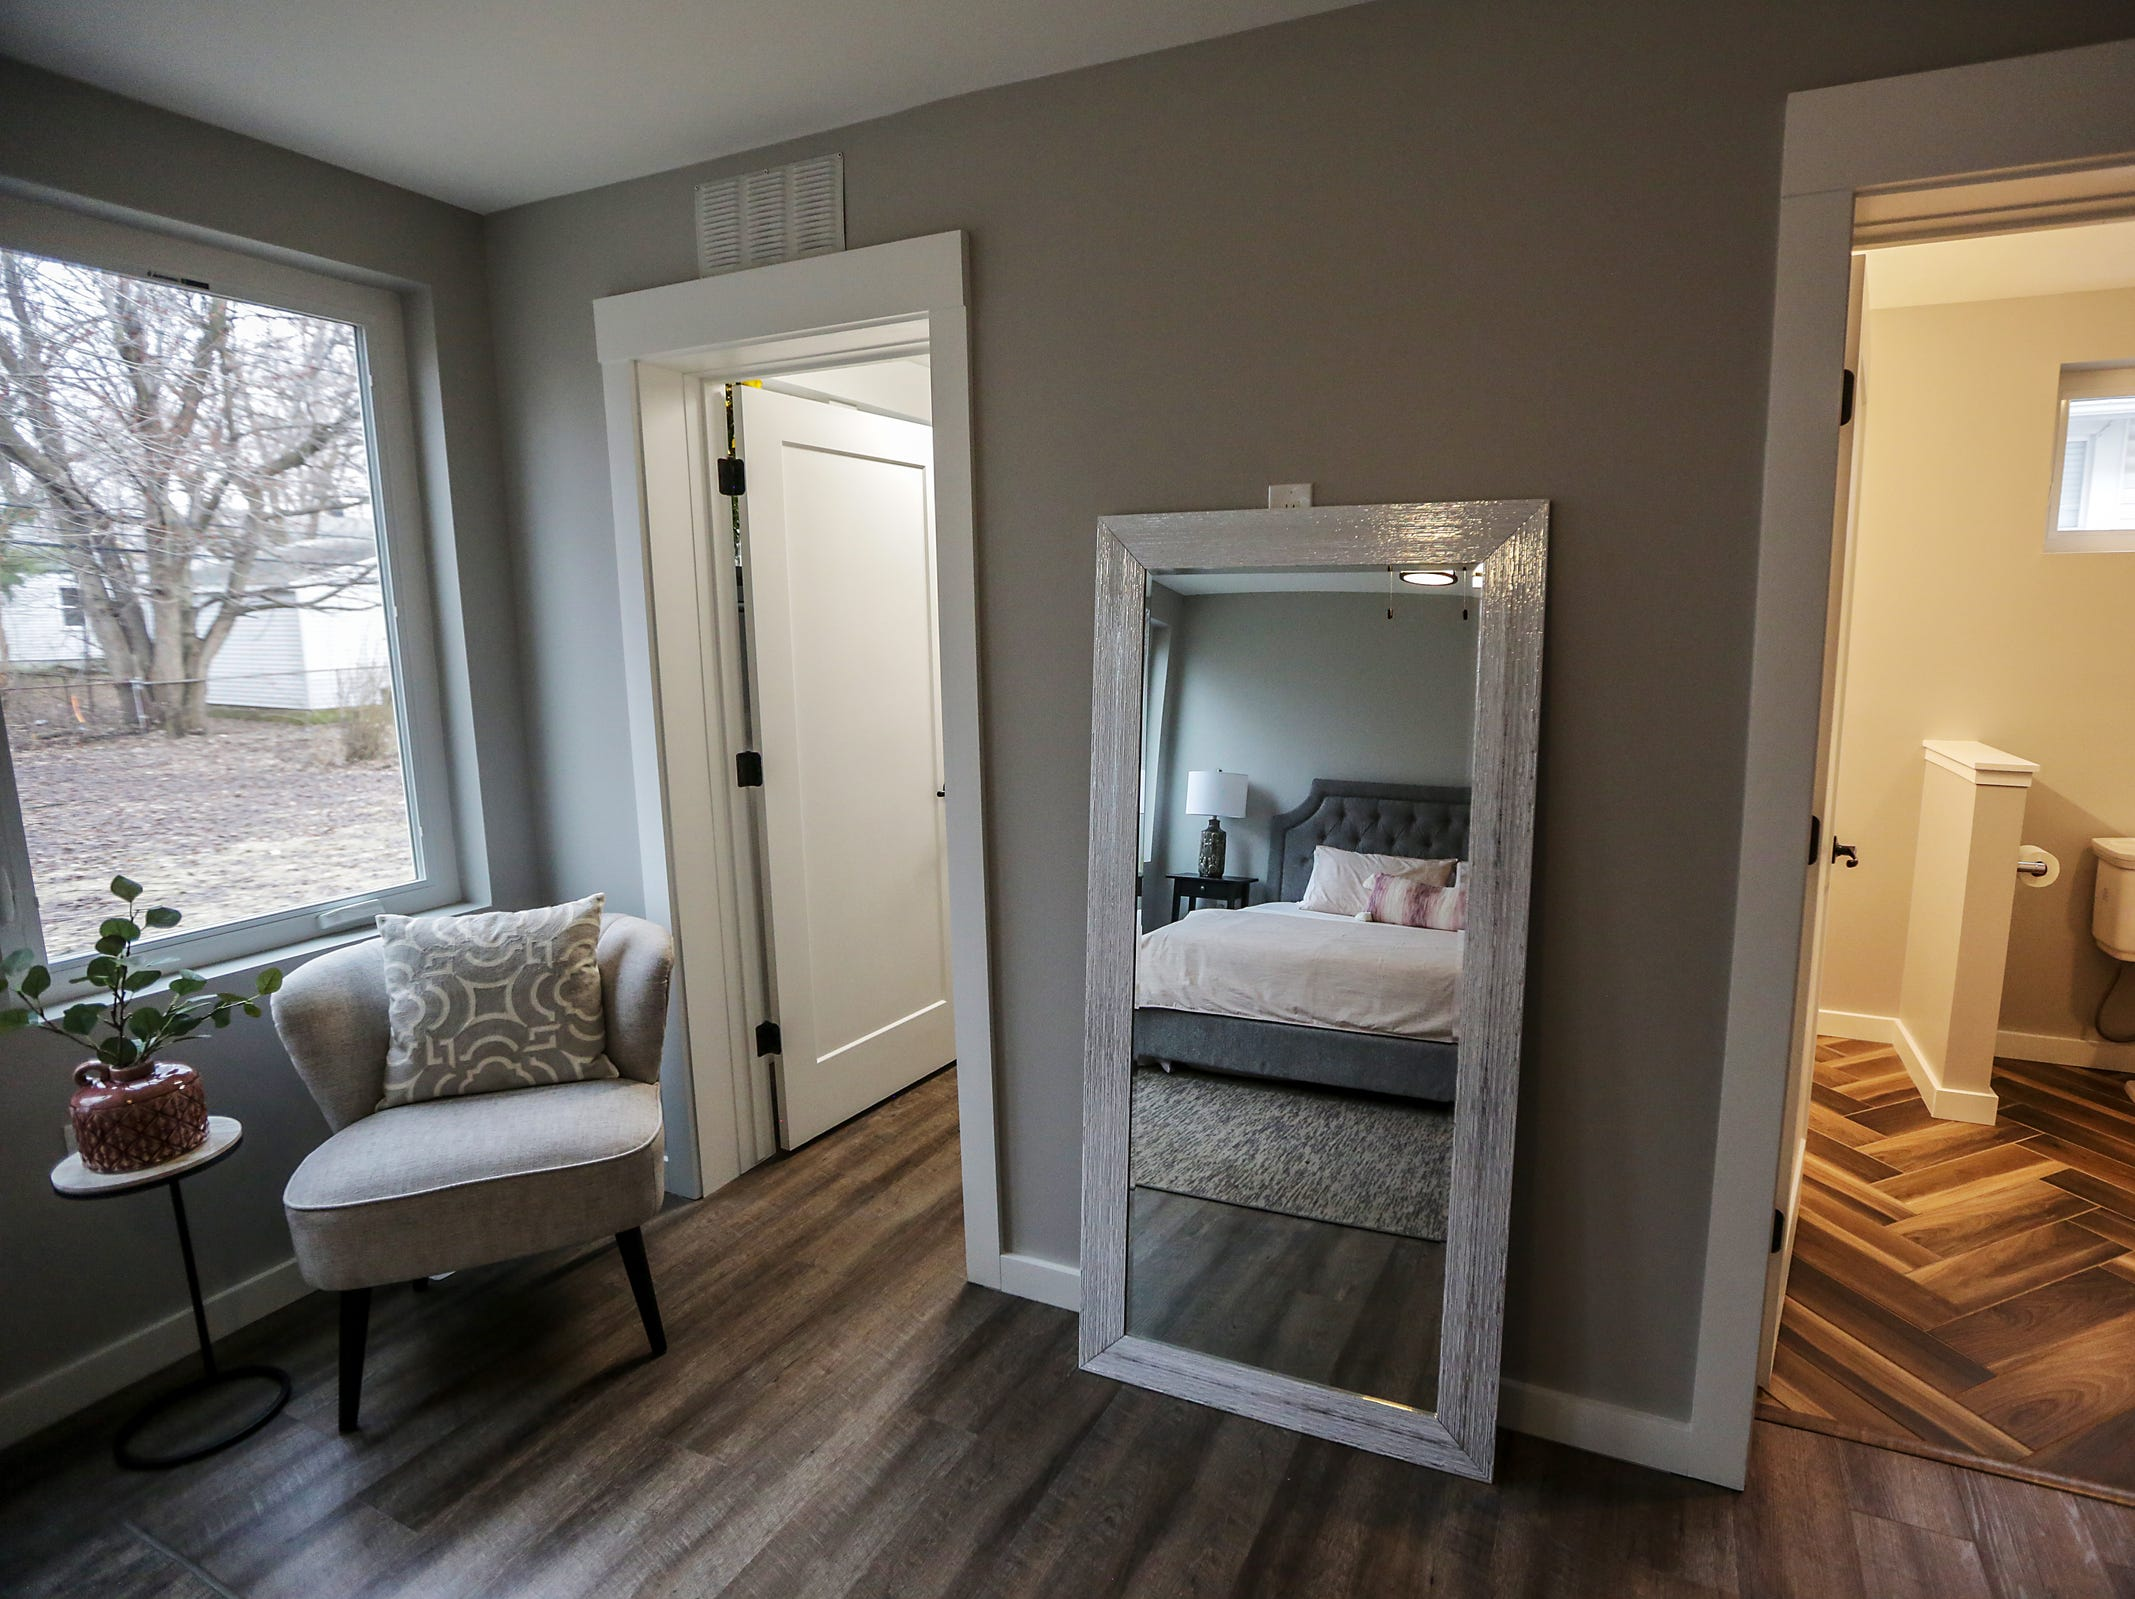 The master bedroom feature a custom bathroom and closet in the shipping container home in Ferndale, Mich. on Thursday, March 14, 2019.